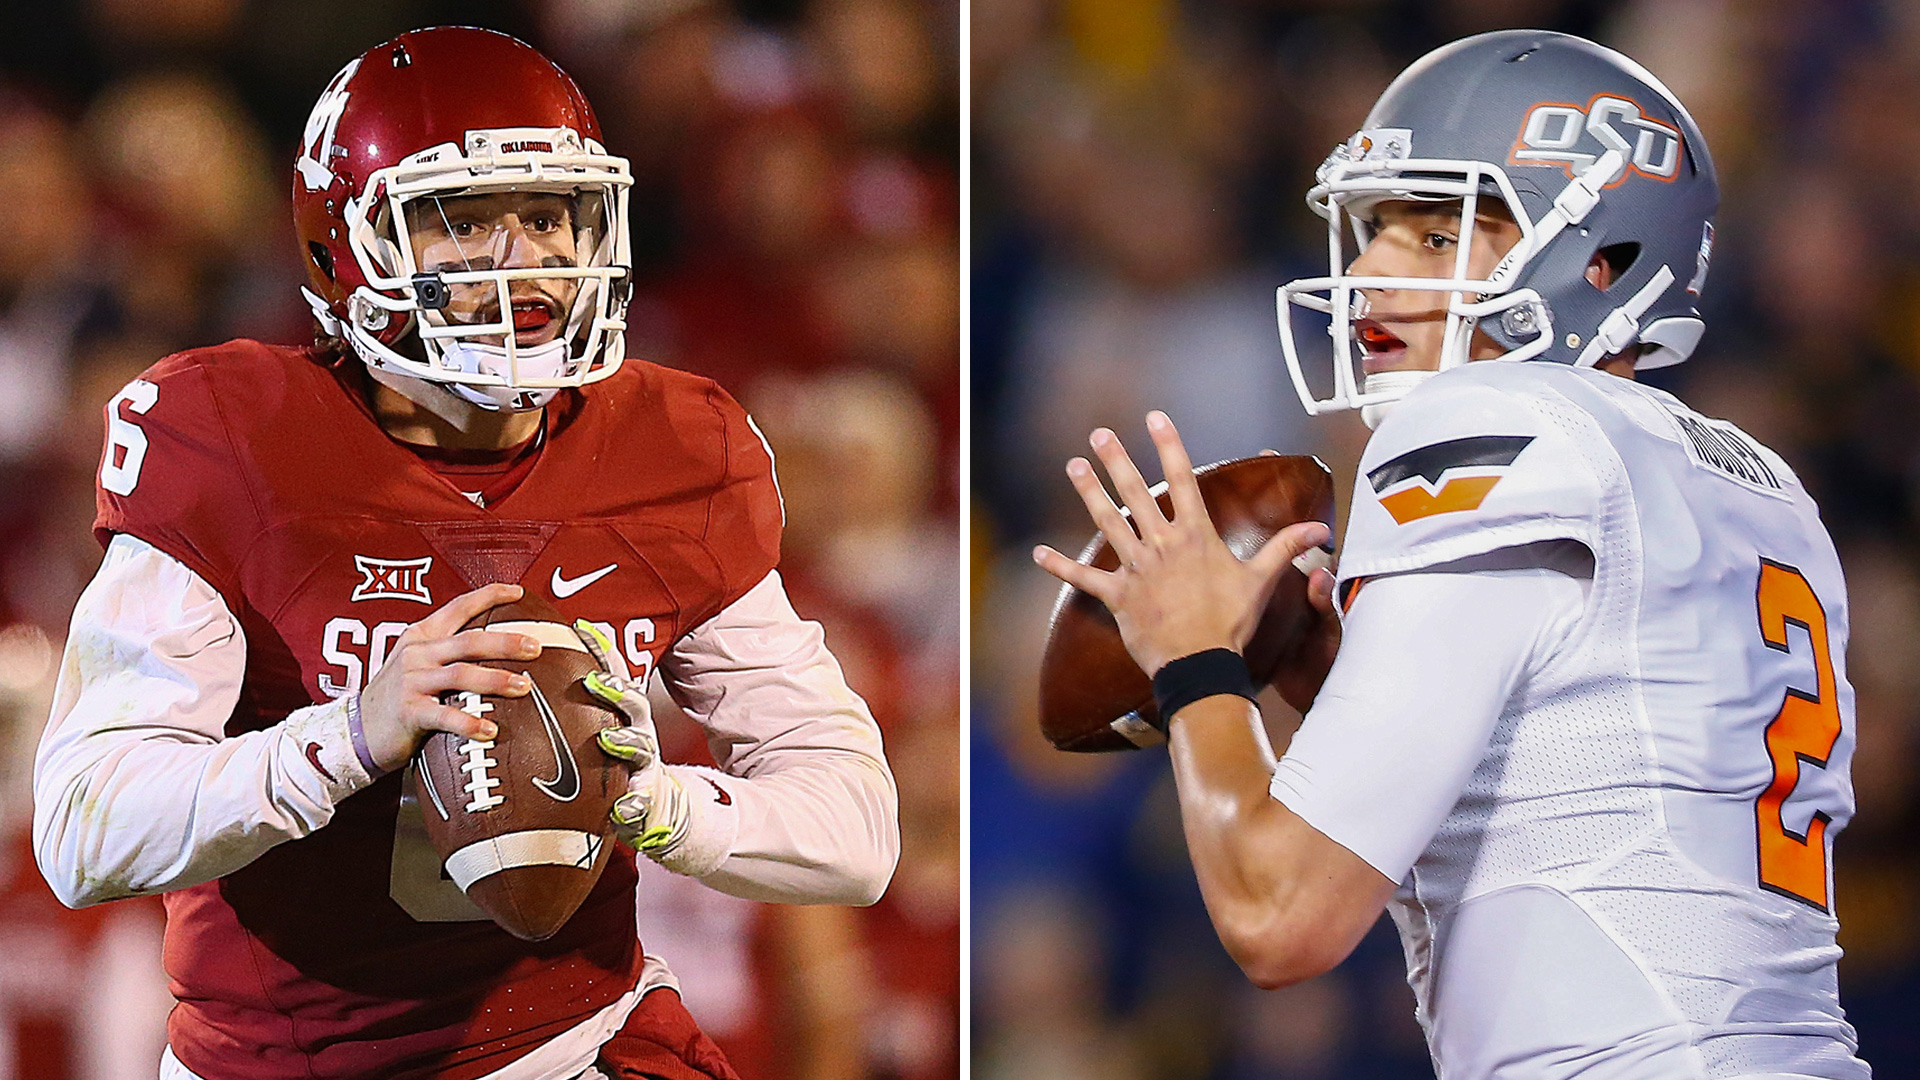 Bedlam: Mayfield dominates as Oklahoma takes shootout win in Stillwater